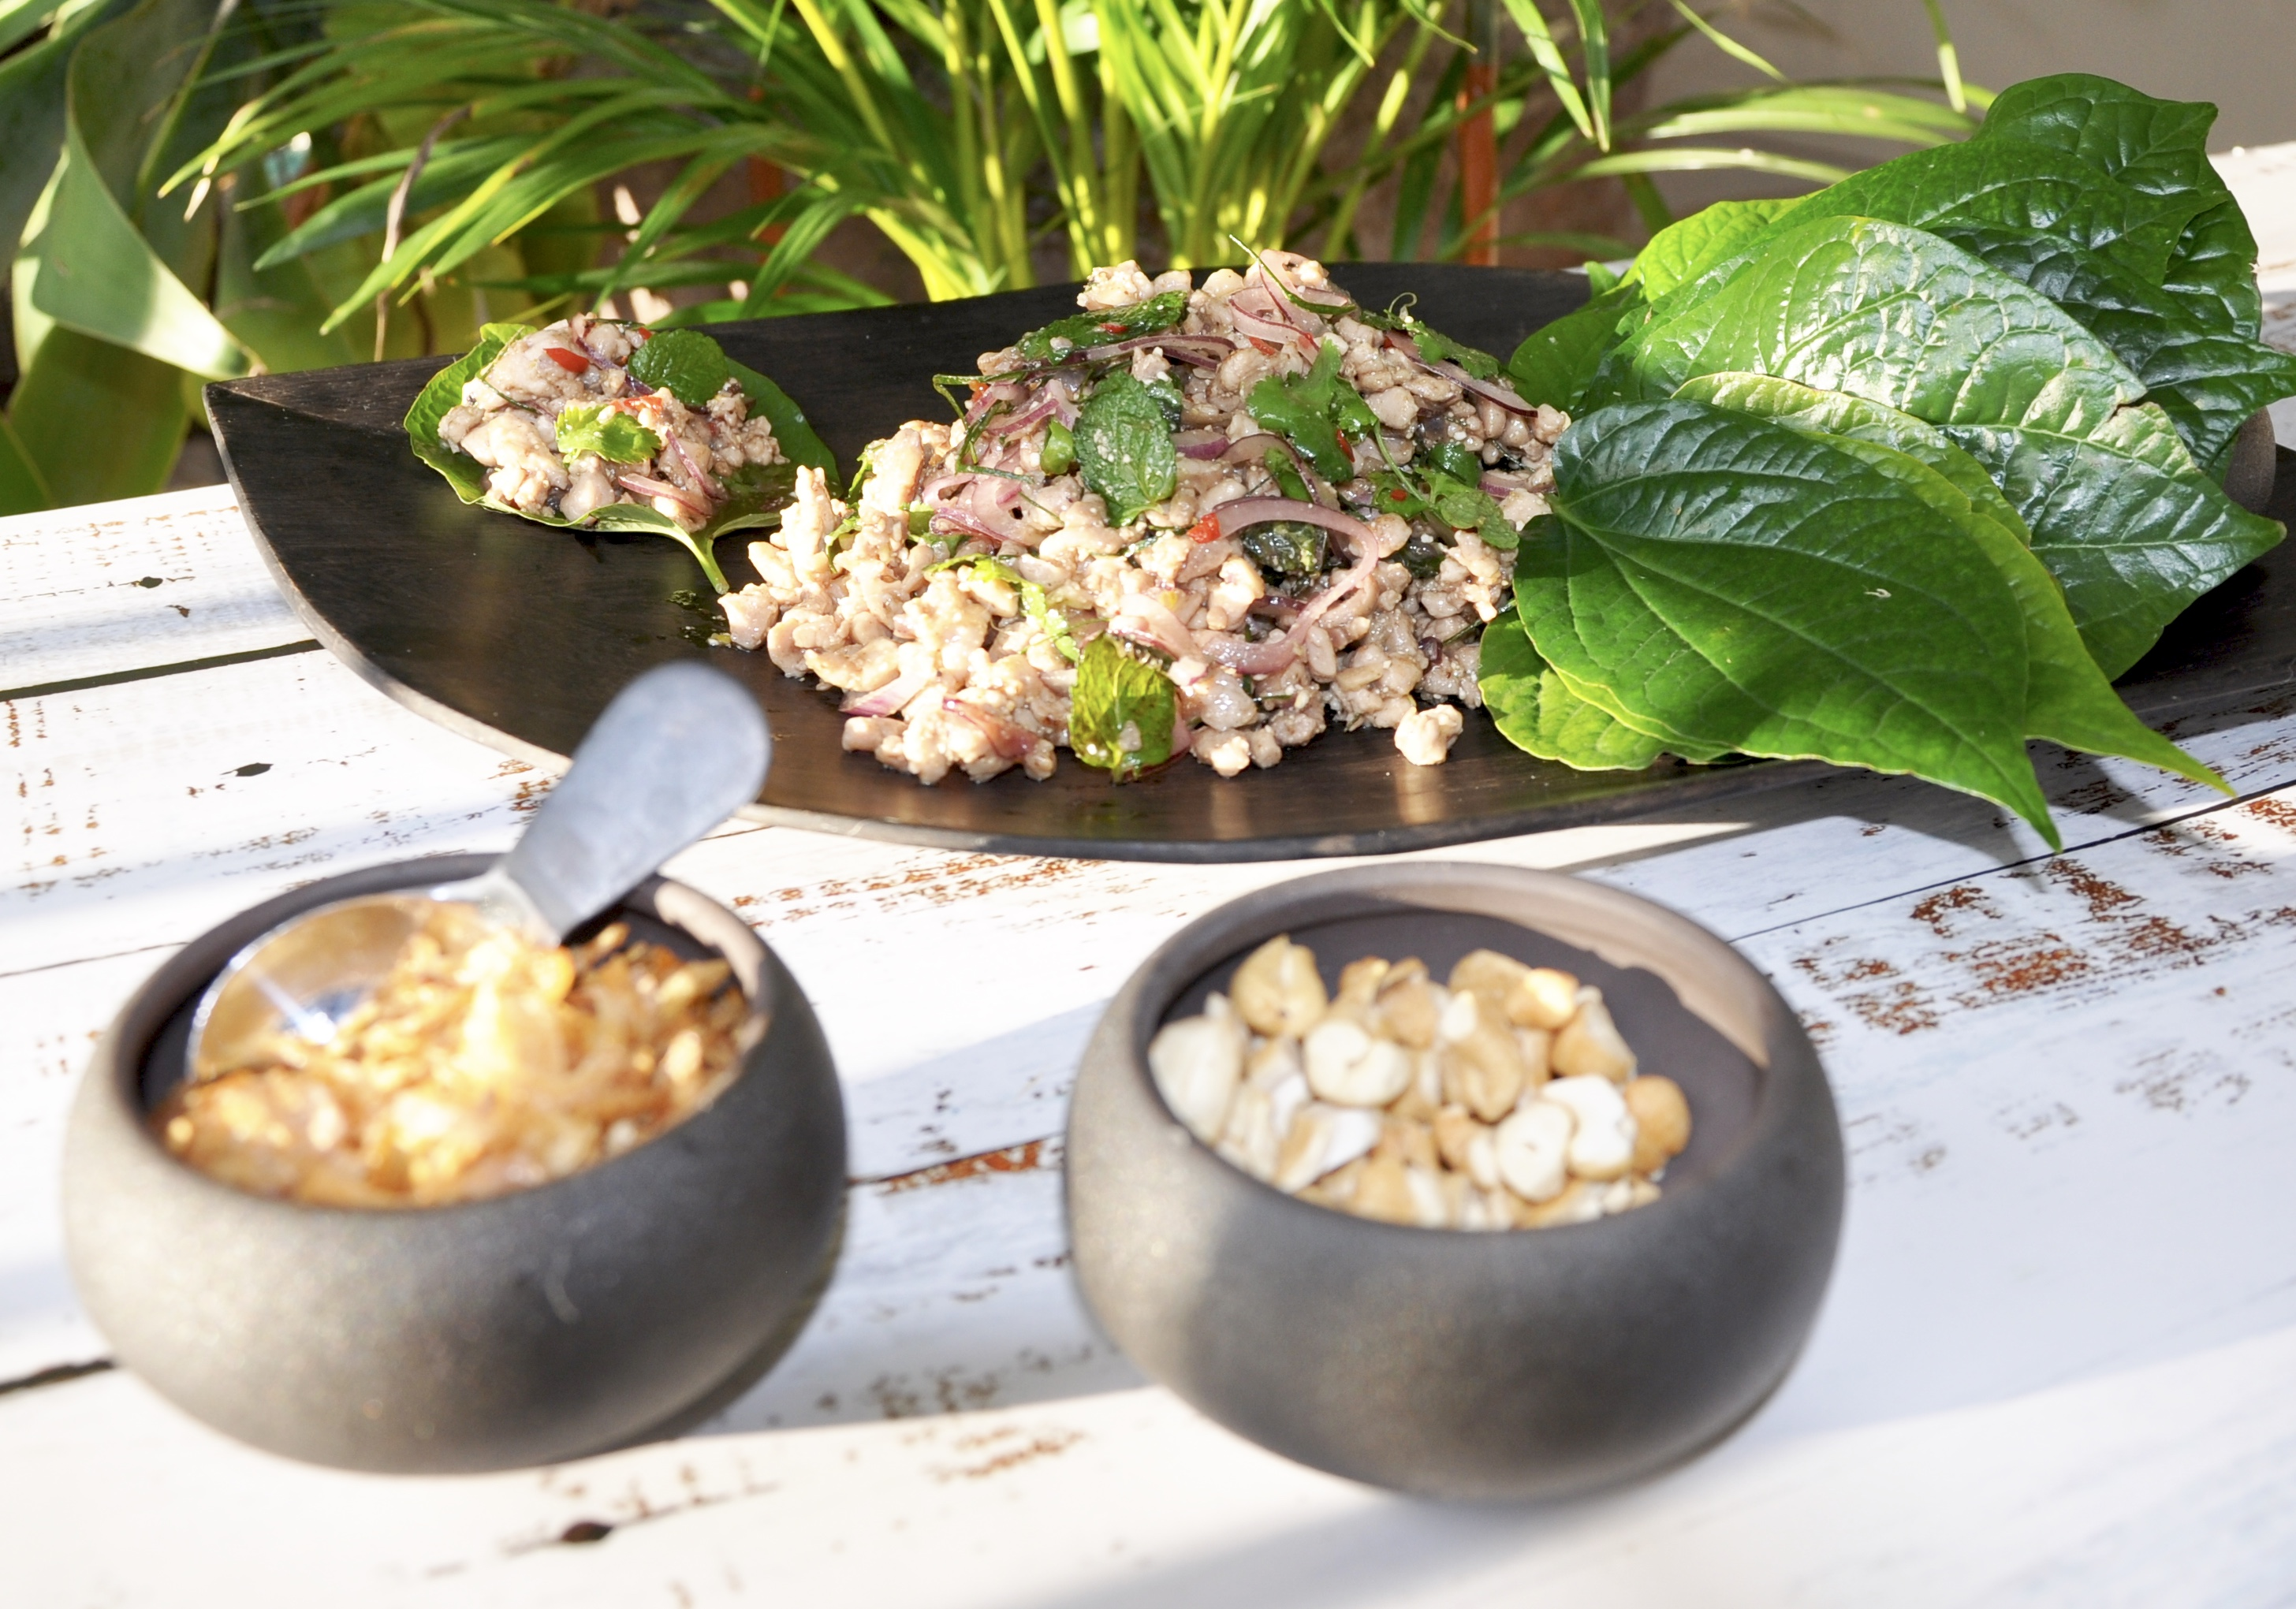 Thai chicken larb salad cooked and served on a somber plate with betel leaves and 2 bowls with fried shallots and cashew nuts